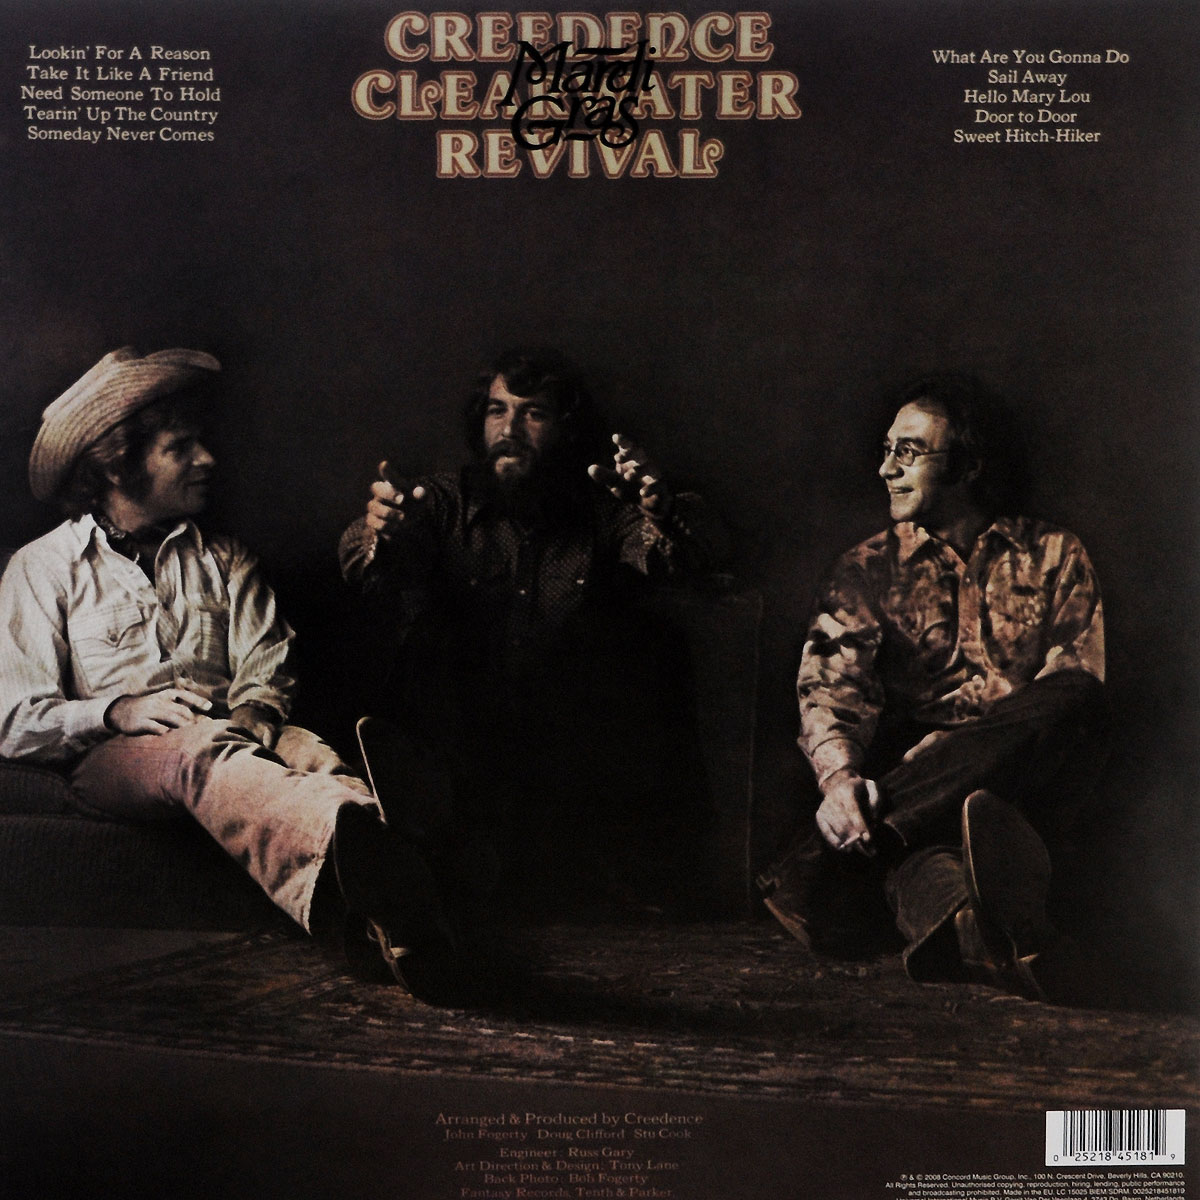 Creedence Clearwater Revival Creedence Clearwater Revival. Mardi Gras (LP) виниловая пластинка creedence clearwater revival mardi gras